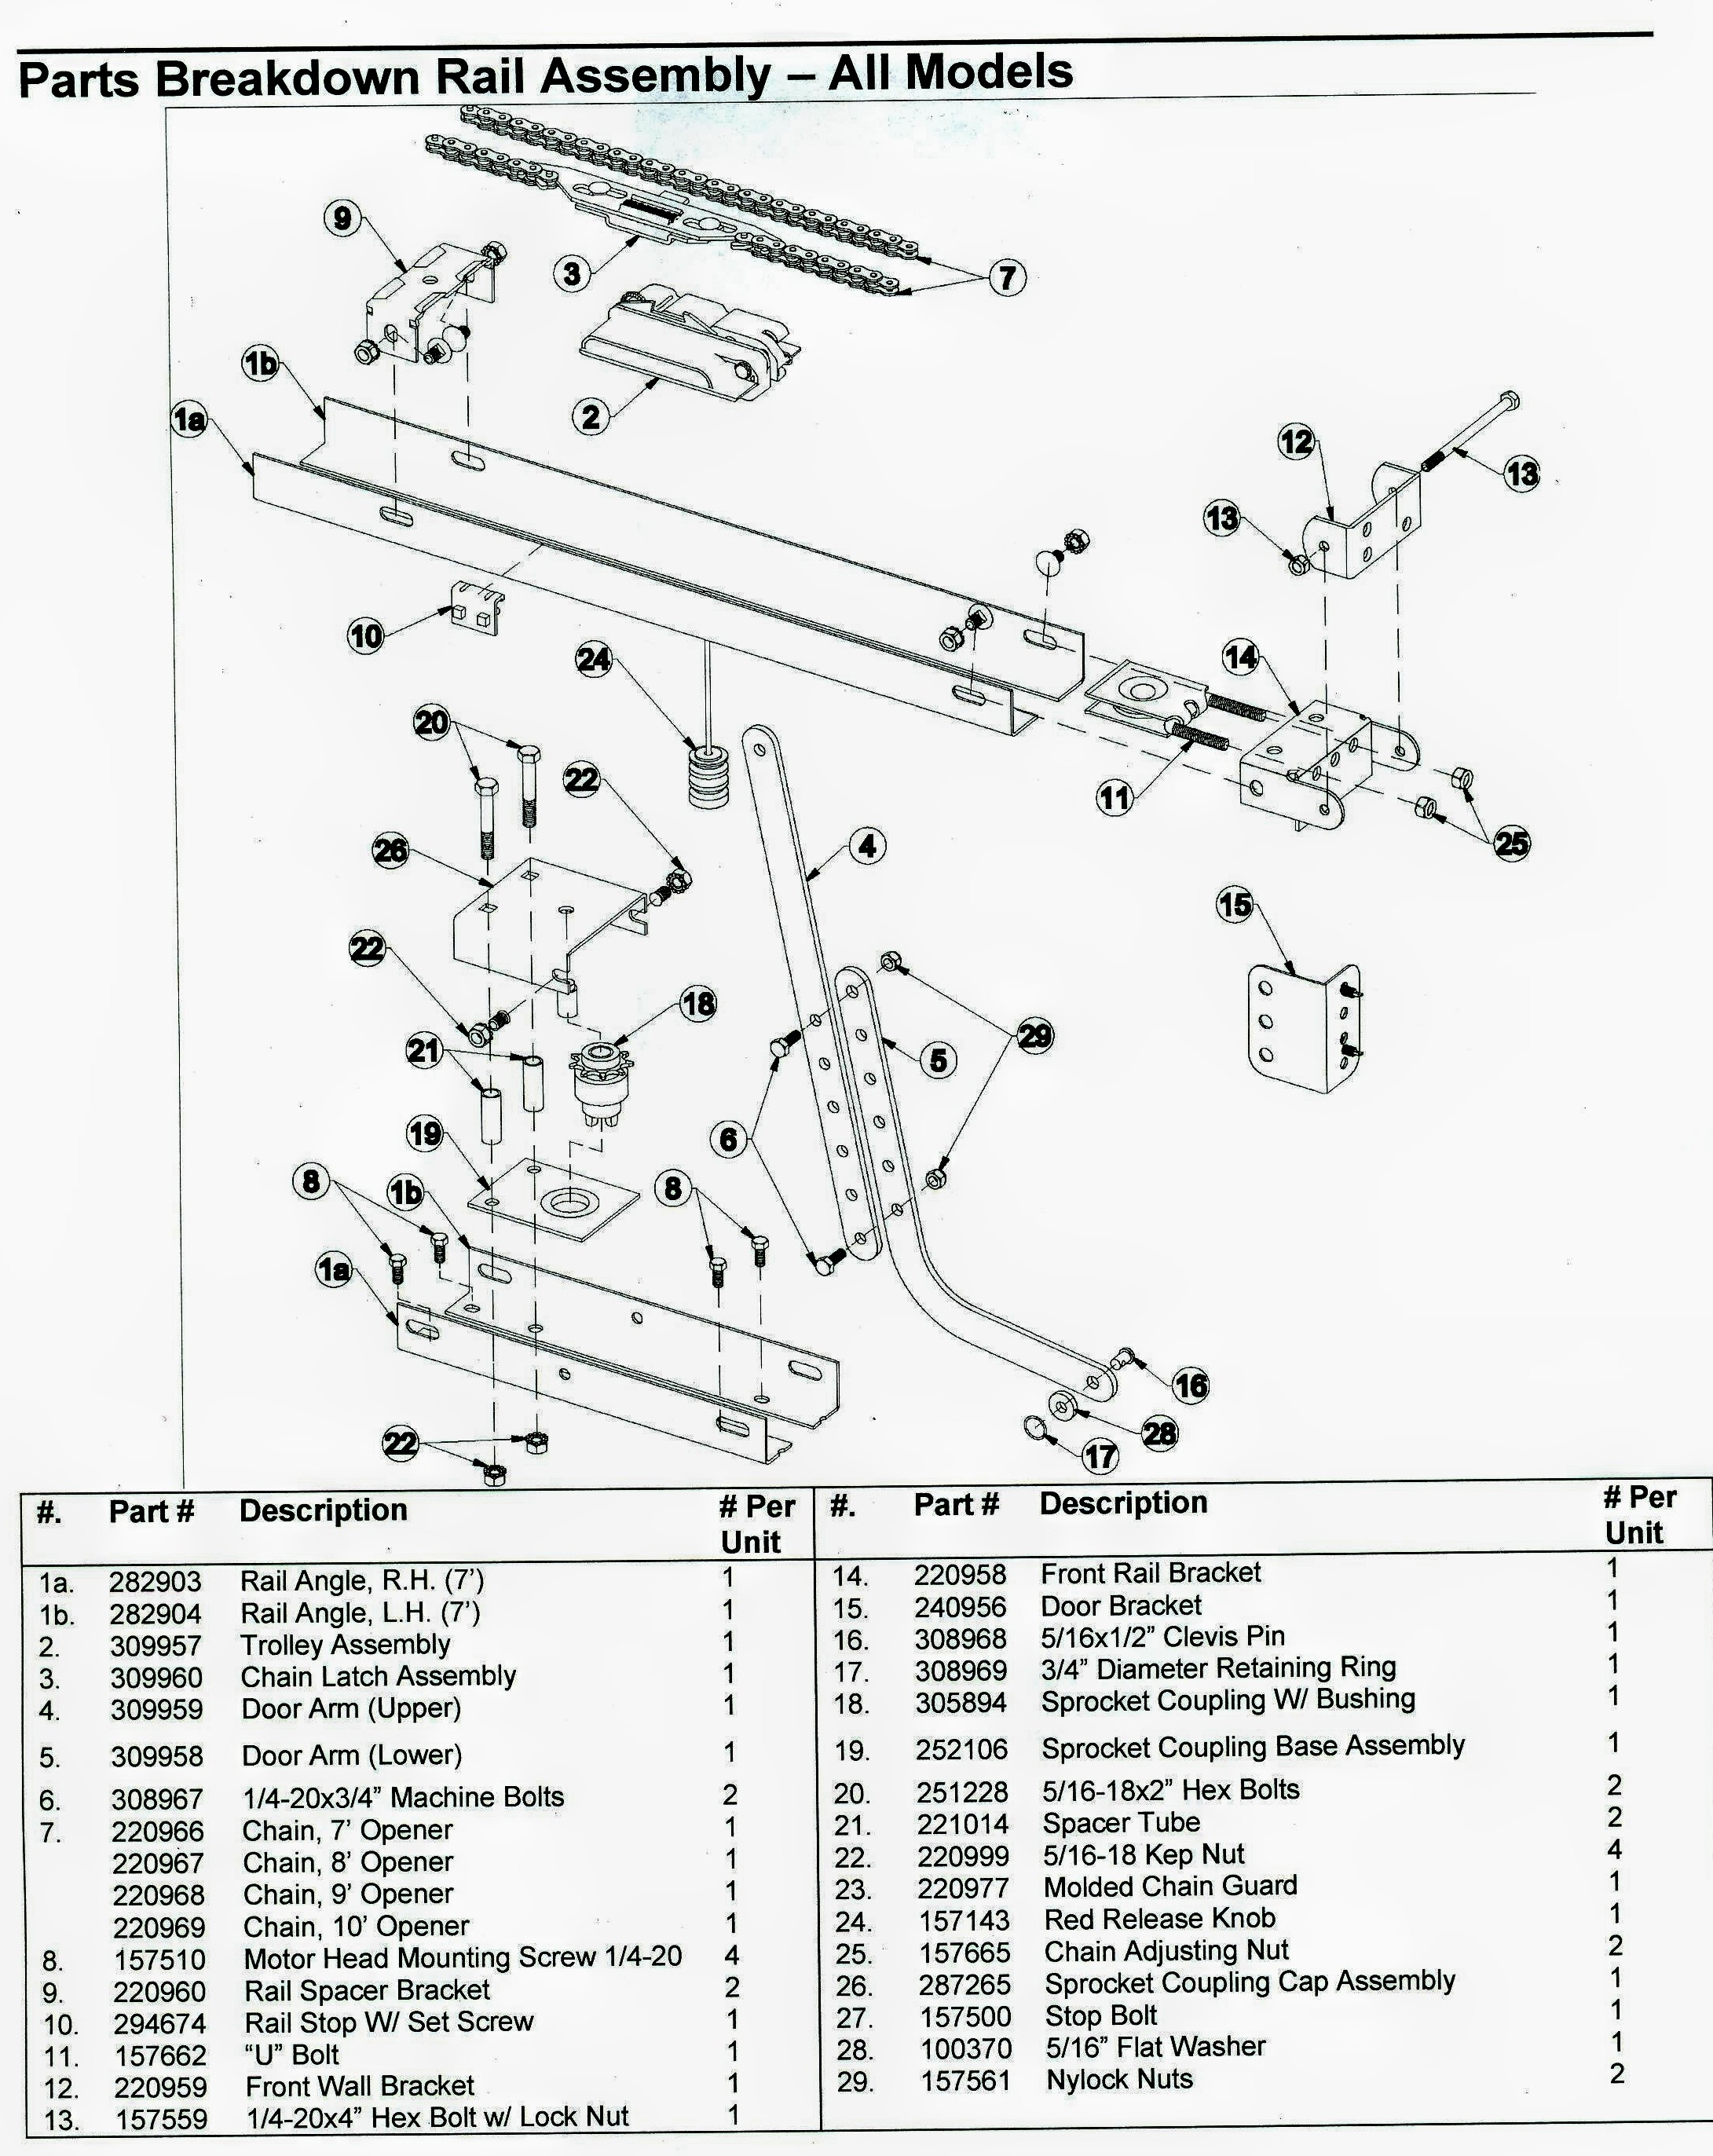 wiring diagram for liftmaster garage door opener wiring diagram throughout liftmaster garage door opener parts diagram liftmaster garage door opener parts diagram automotive parts Chamberlain LiftMaster Professional 1 2 HP at eliteediting.co